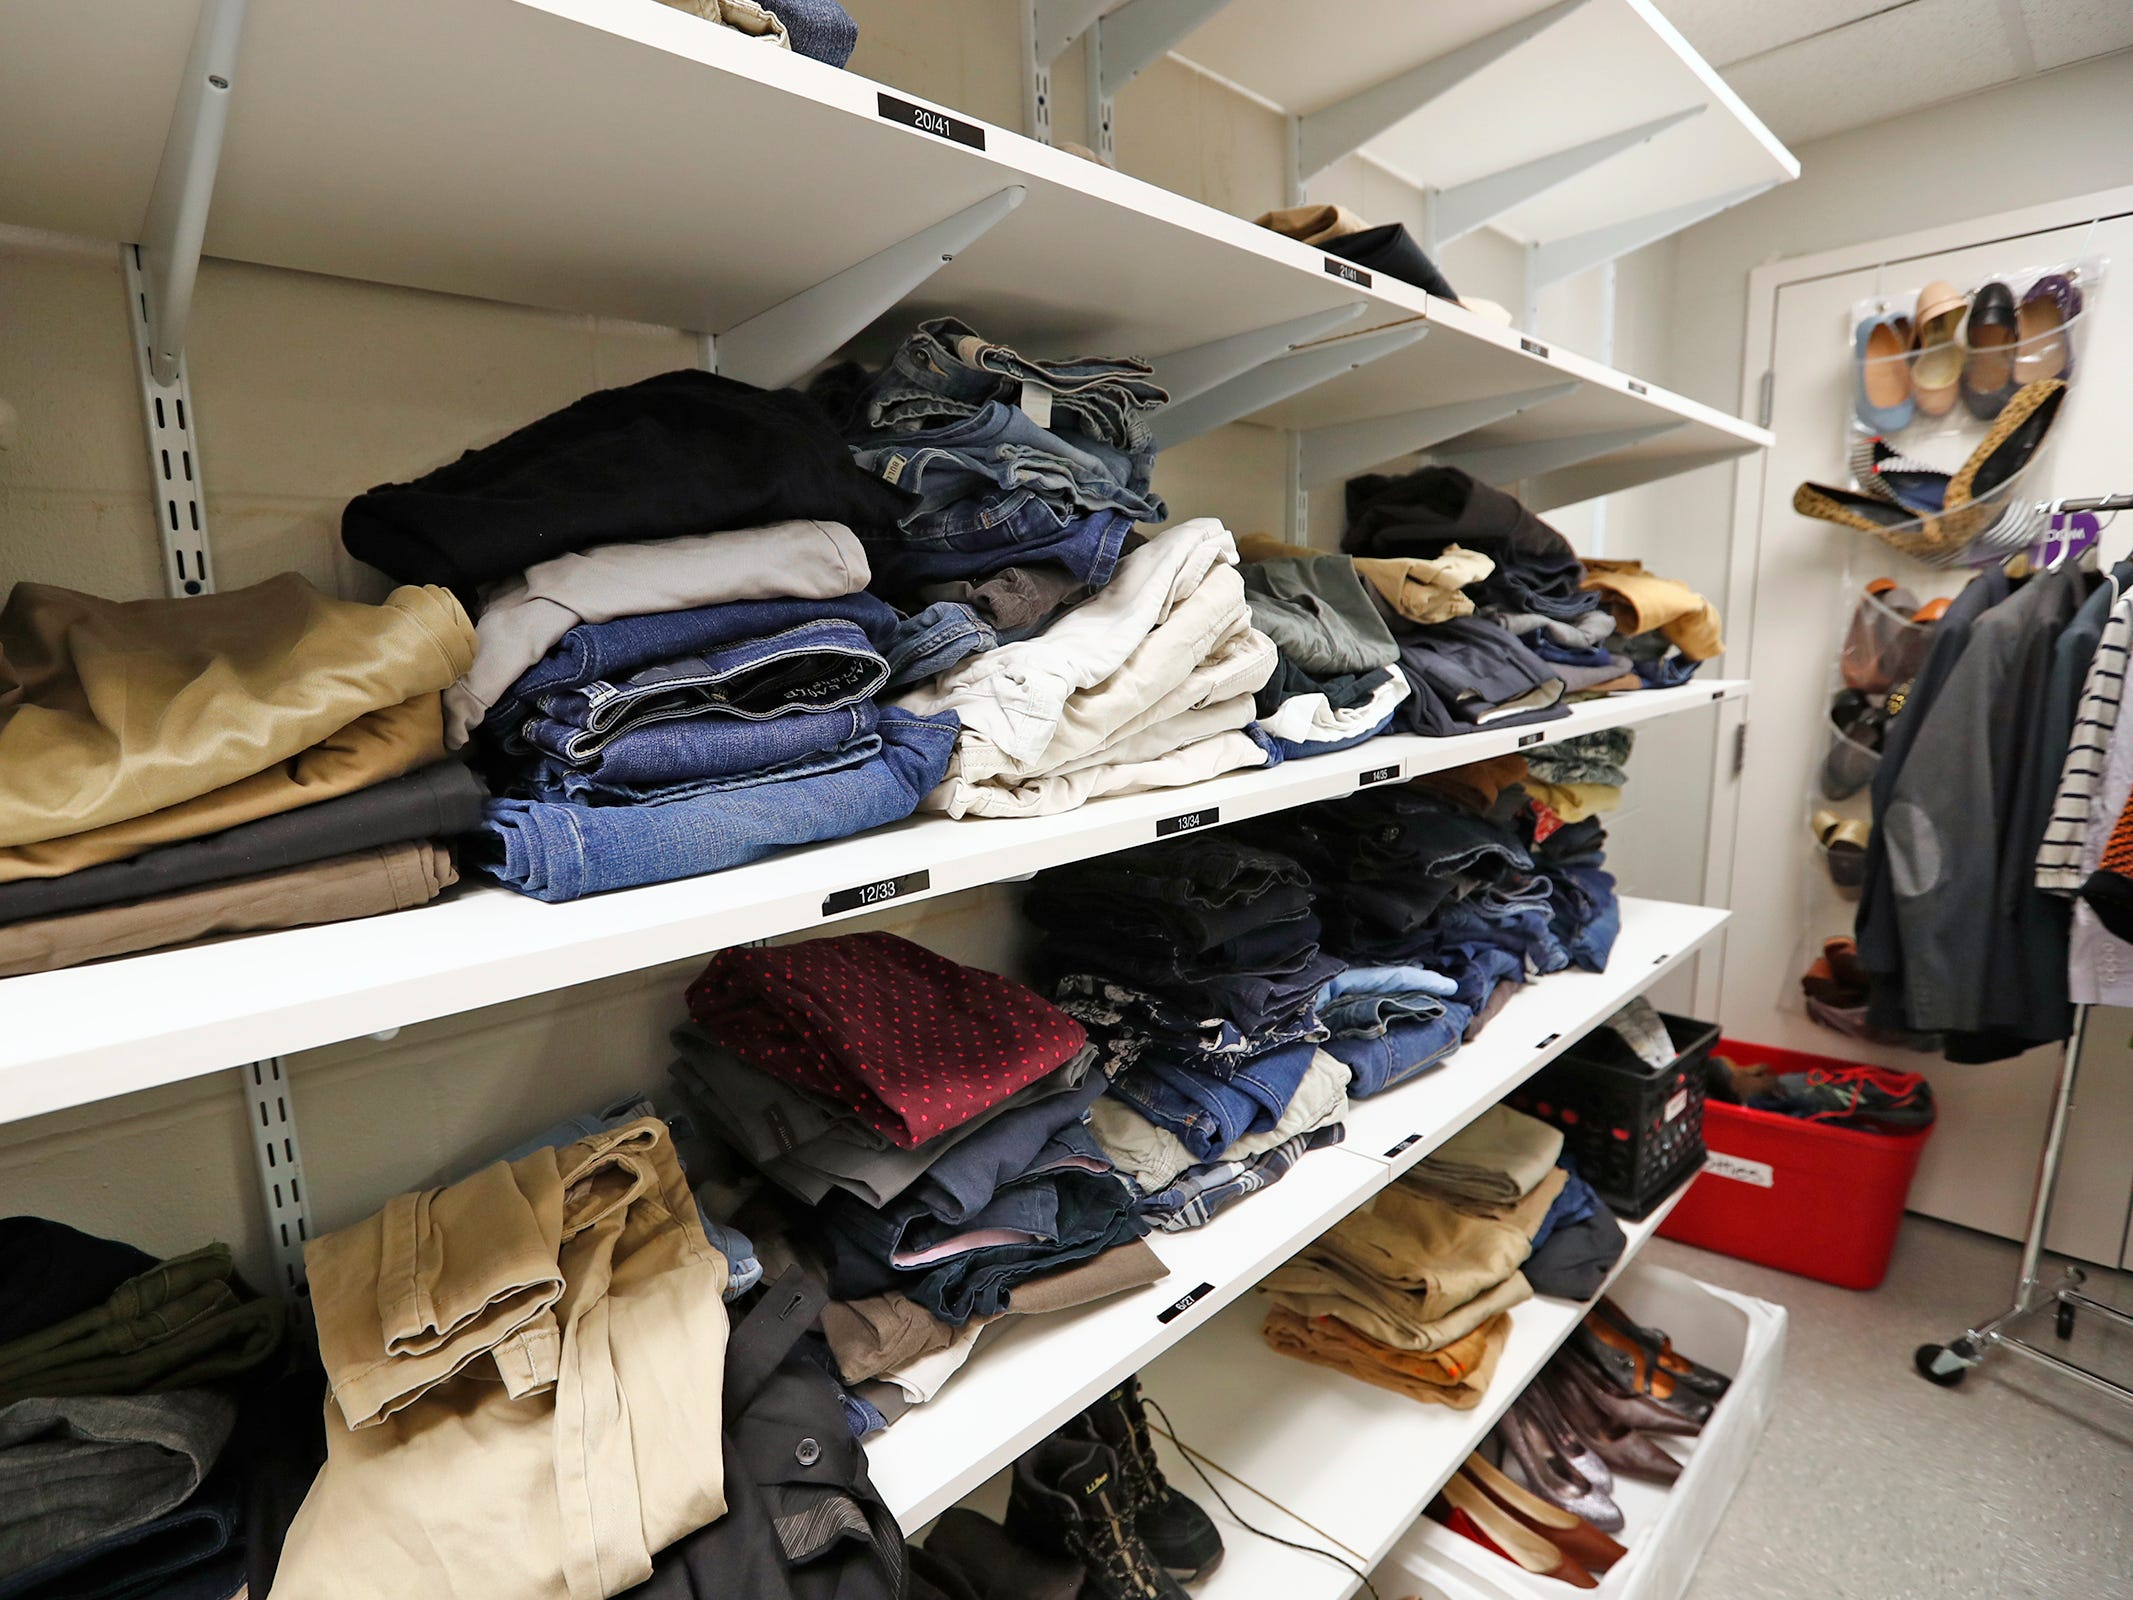 Clothes are available for use at Indiana Youth Group, Tuesday, Nov. 27, 2018.  The organization offers a safe drop-in center for LGBTQ+ youth, ages 12-20, and their straight ally friends, in the Indianapolis area.  Activities, tutoring, food and clothes pantries are included in the center.